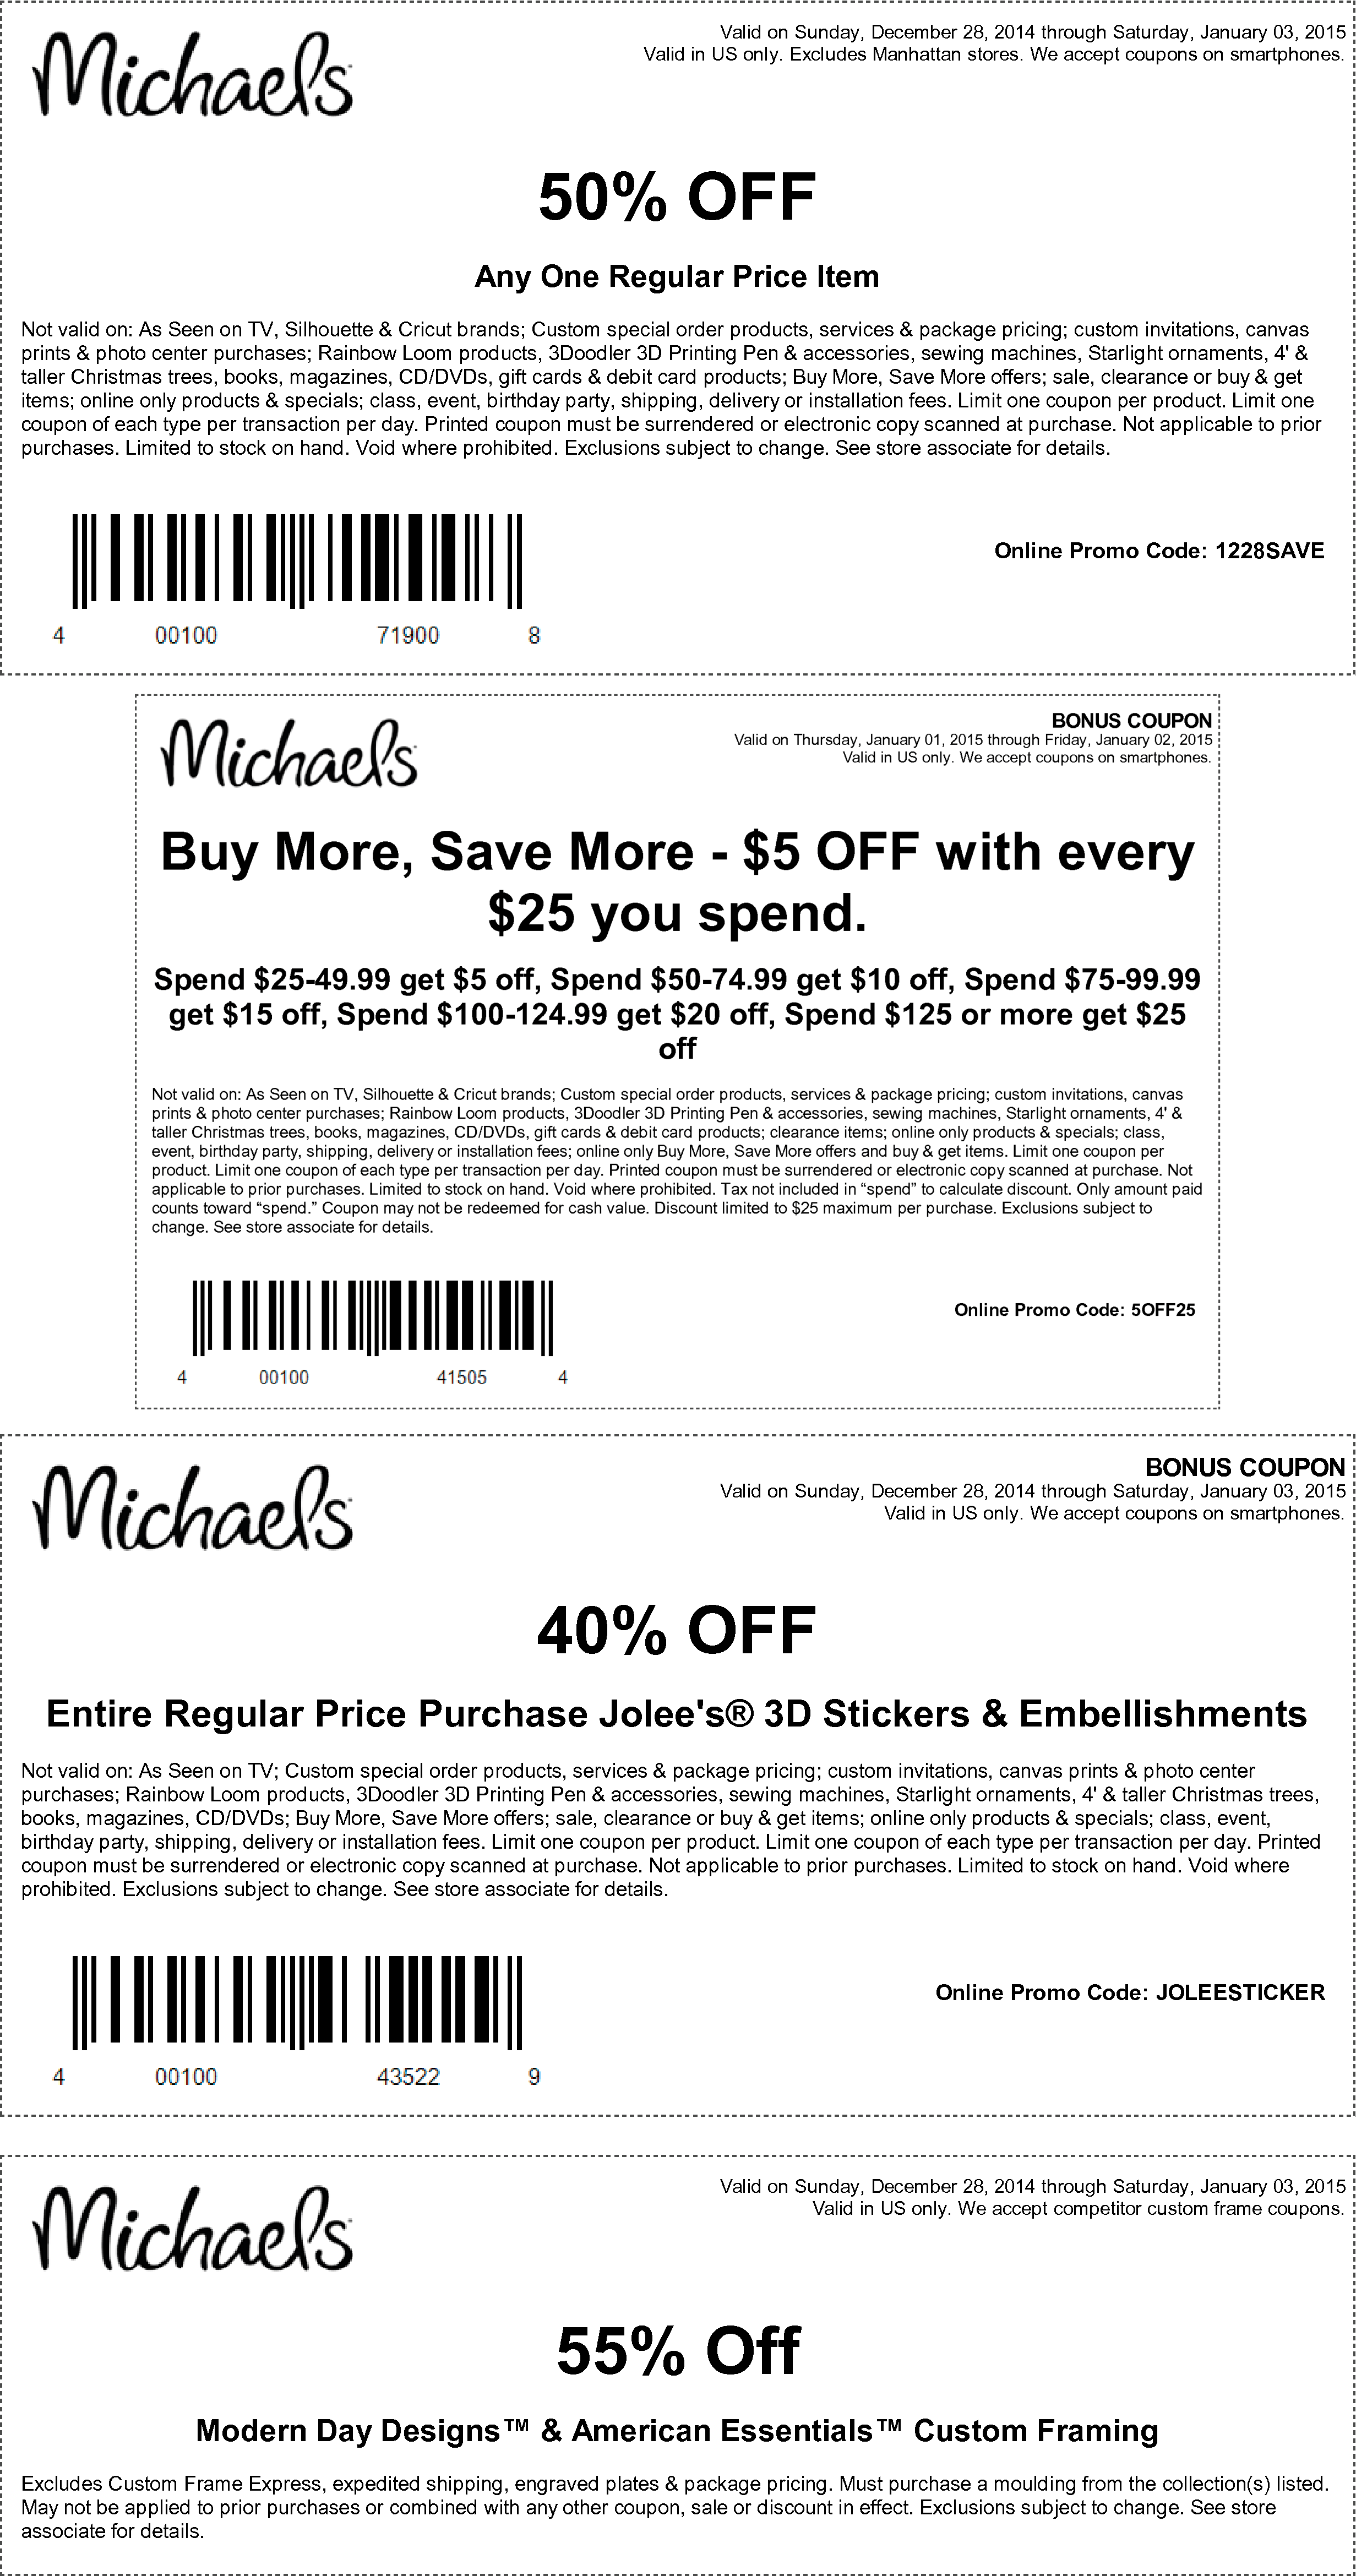 Michaels Coupon May 2017 50% off a single item & more at Michaels, or online via promo code 1228SAVE